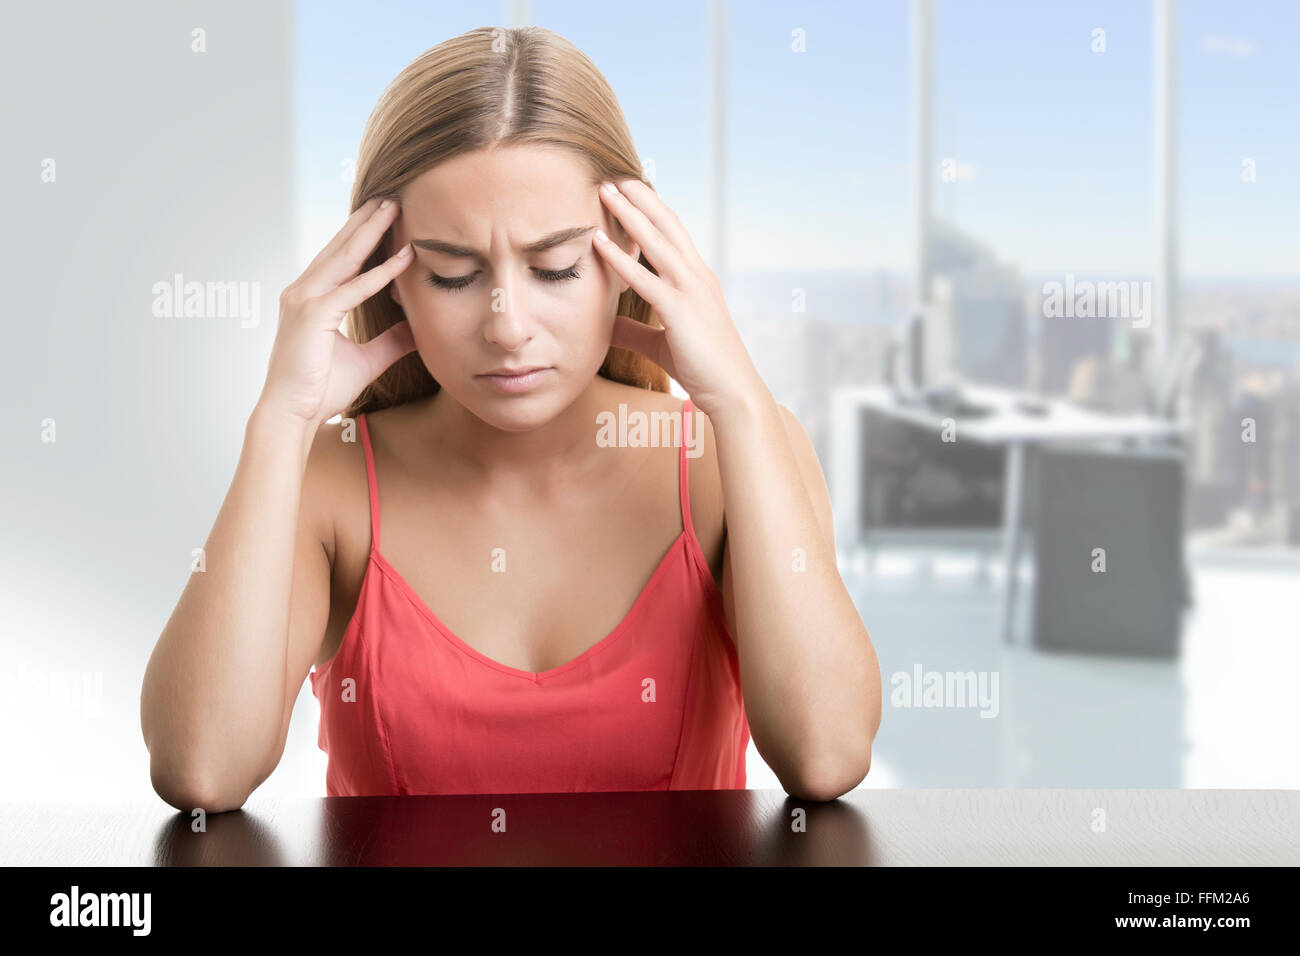 Woman suffering from an headache, holding her hand to the head, in an office - Stock Image